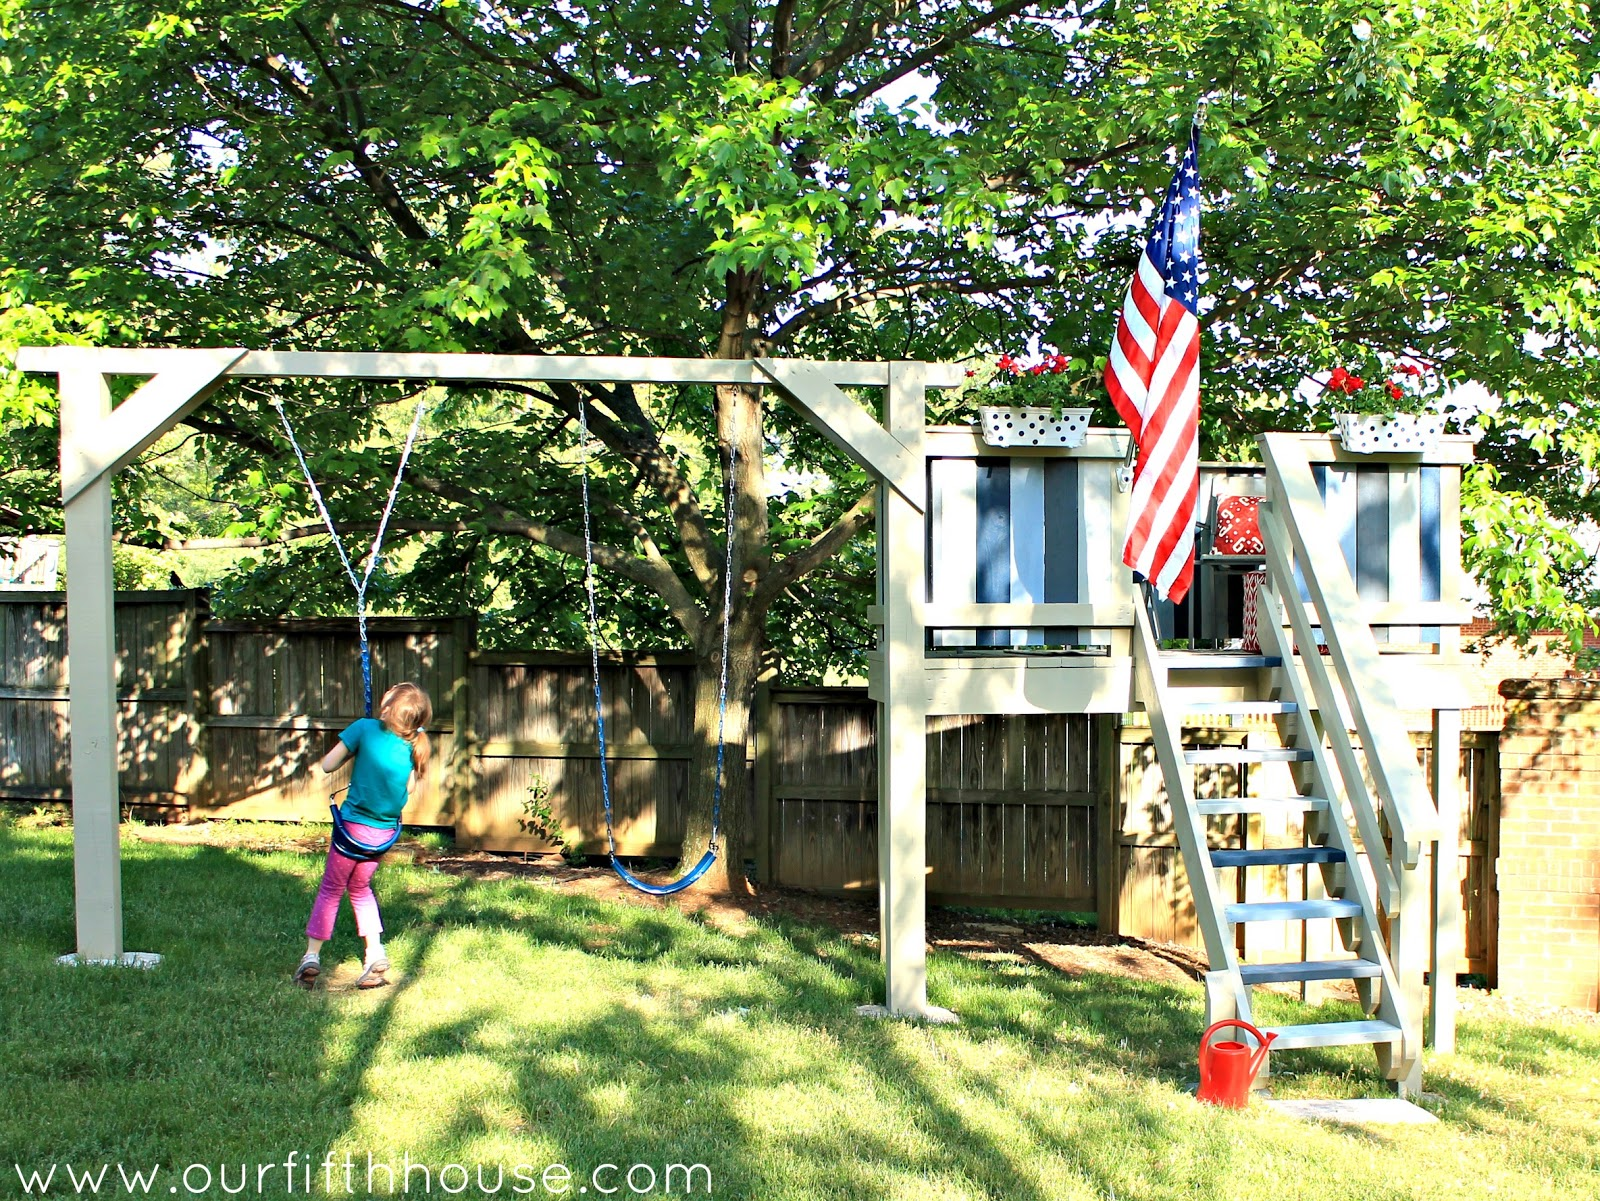 DIY Swing Set & Playhouse Our Fifth House